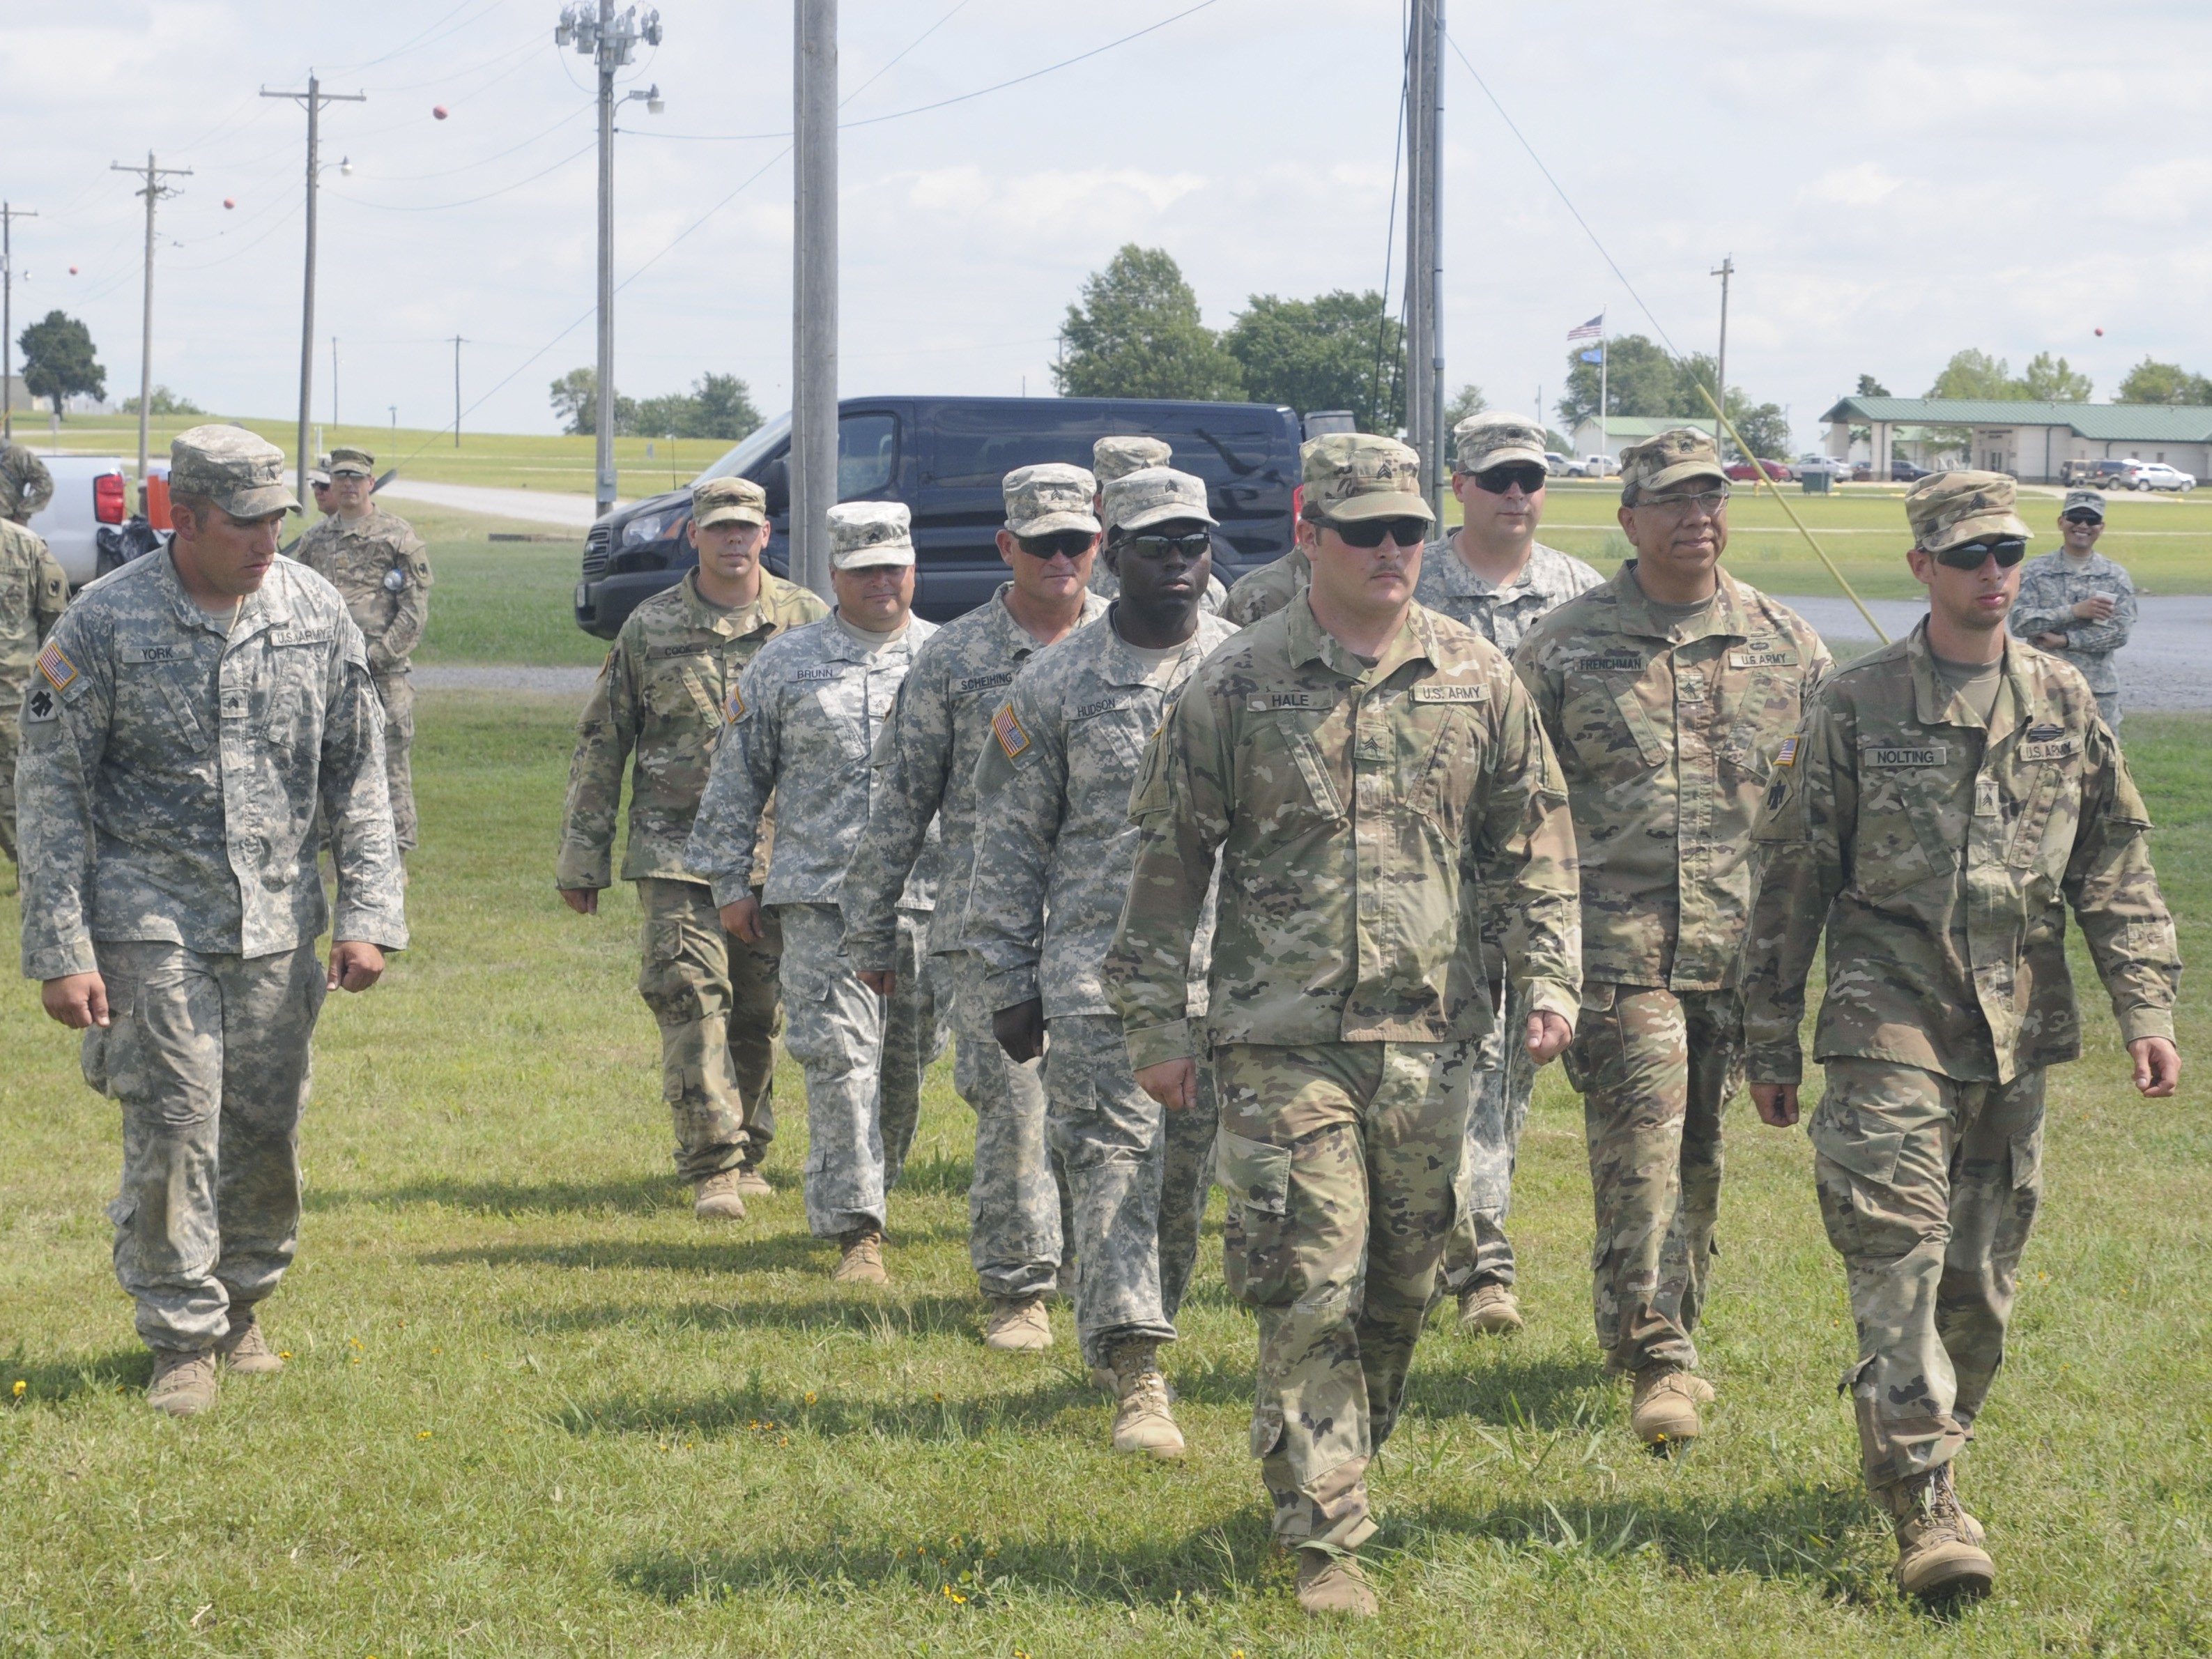 National guard ncos train for continued readiness article the plains warrior was designed to reintroduce junior non commissioned officers to the military fundamentals and techniques necessary to prepare and equip them nvjuhfo Image collections